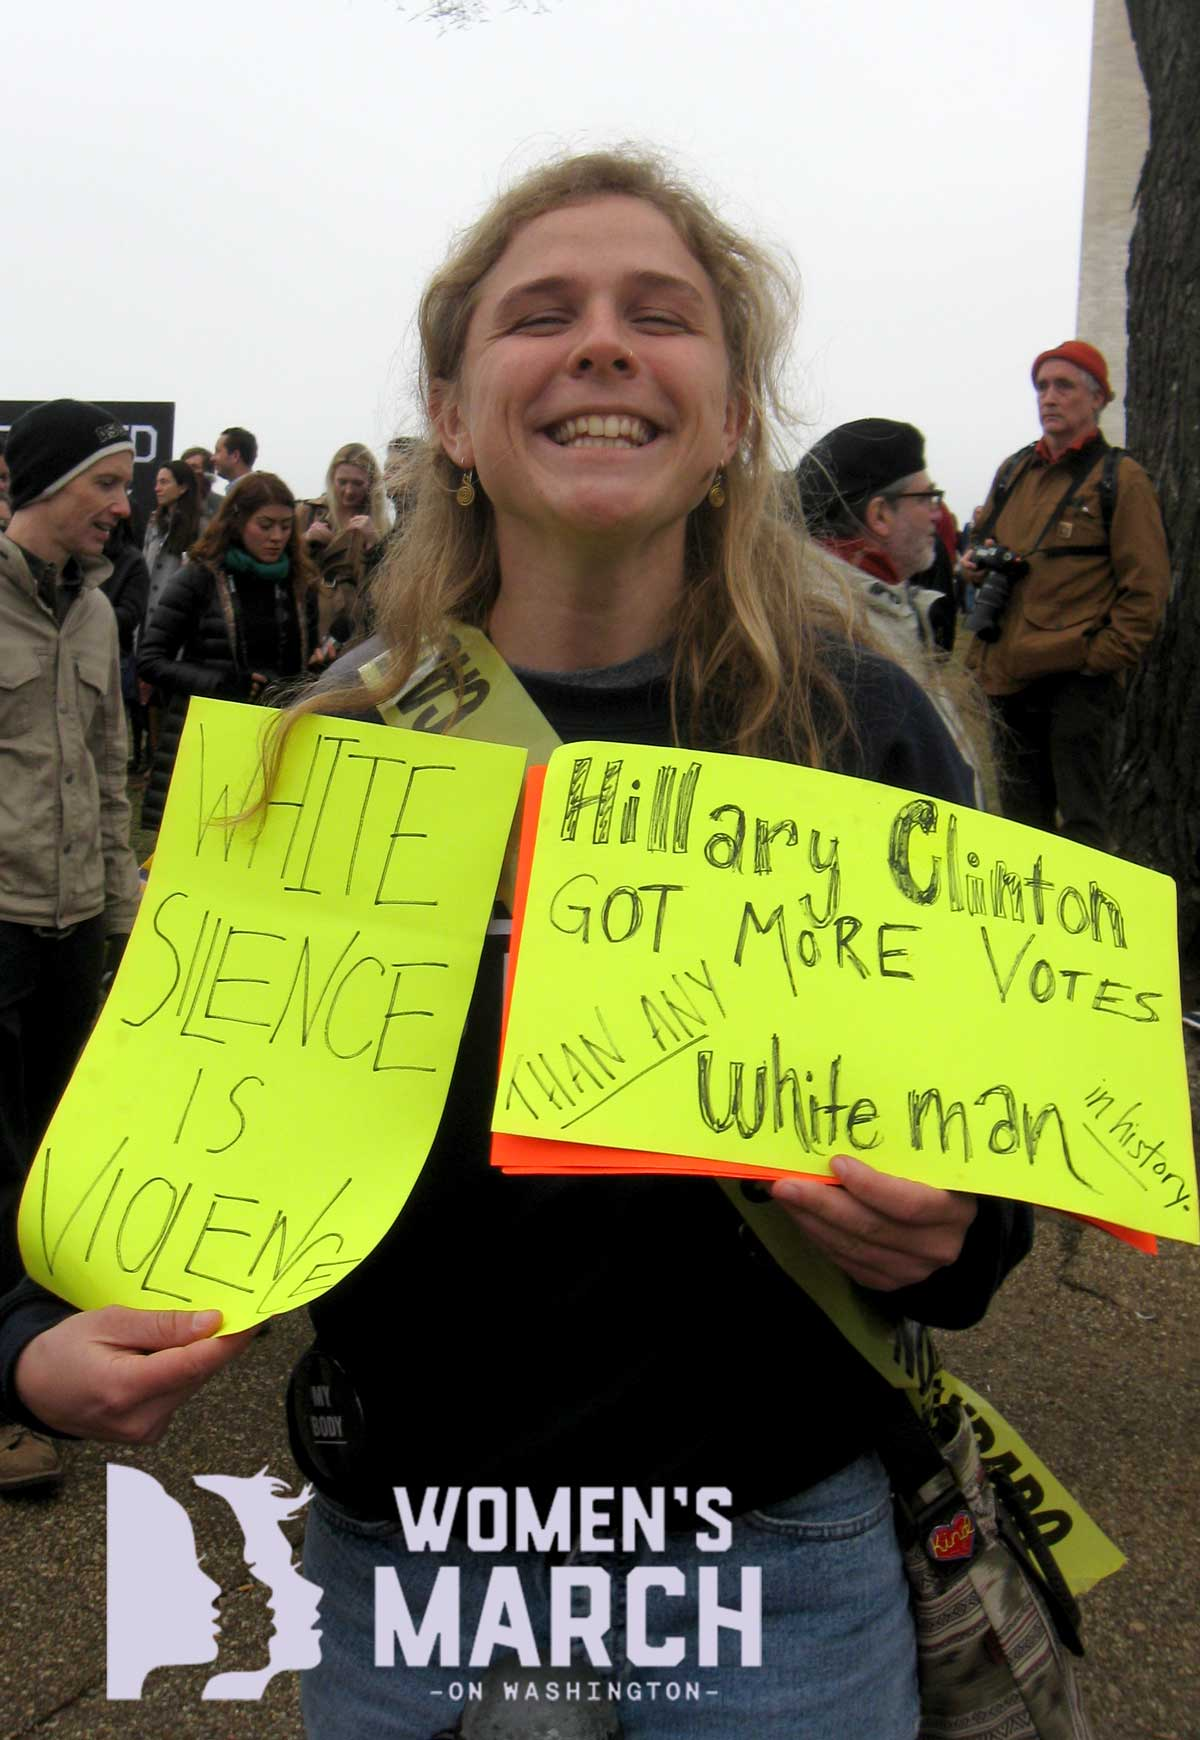 """Hillary Clinton got more votes than any white man in history."" ""White silence is violence."""